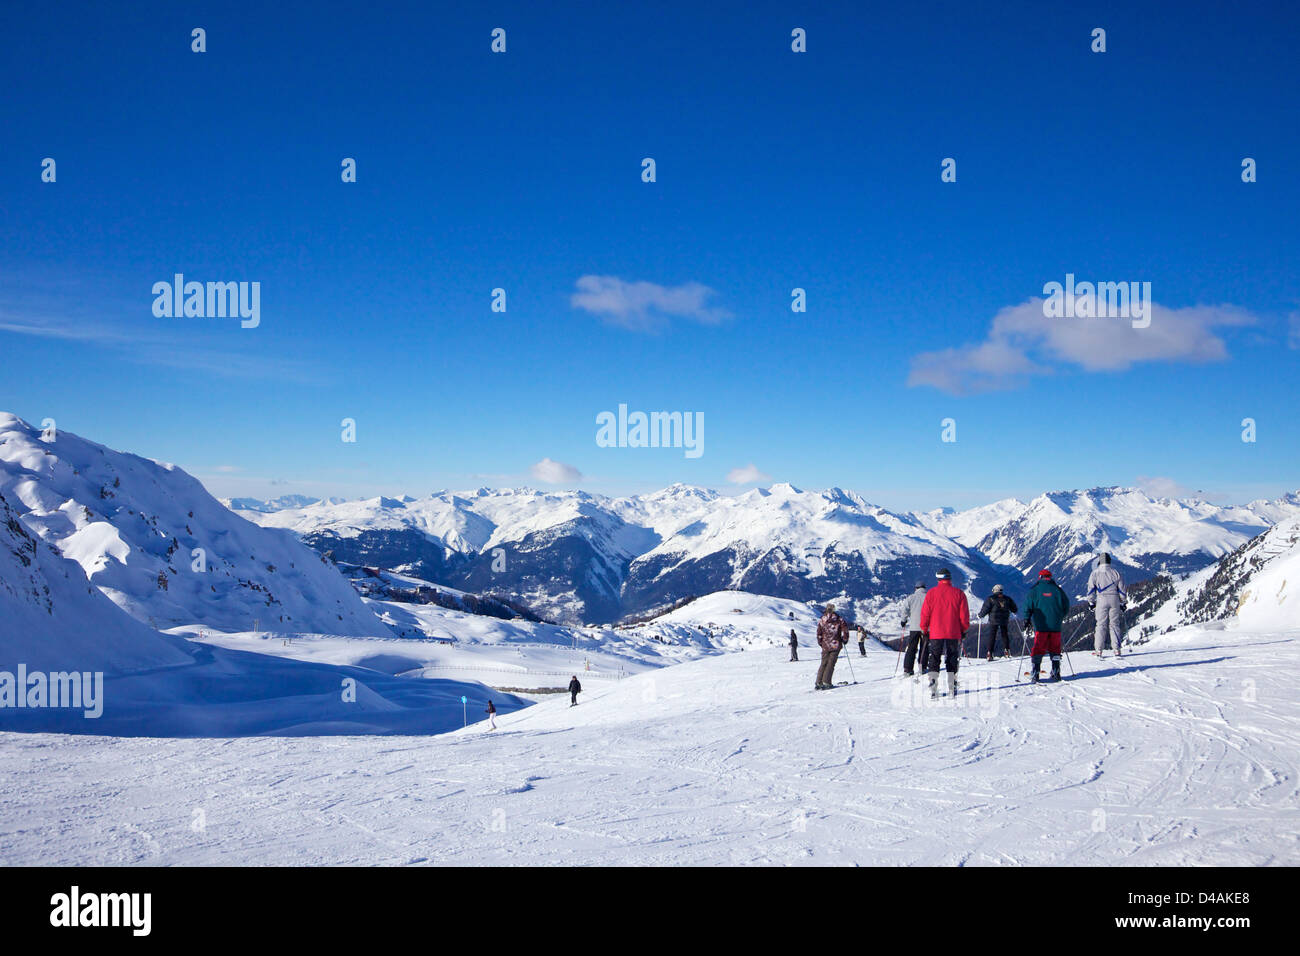 La Tome, blue piste, top of La Rossa, winter sun, La Plagne, France, Europe - Stock Image